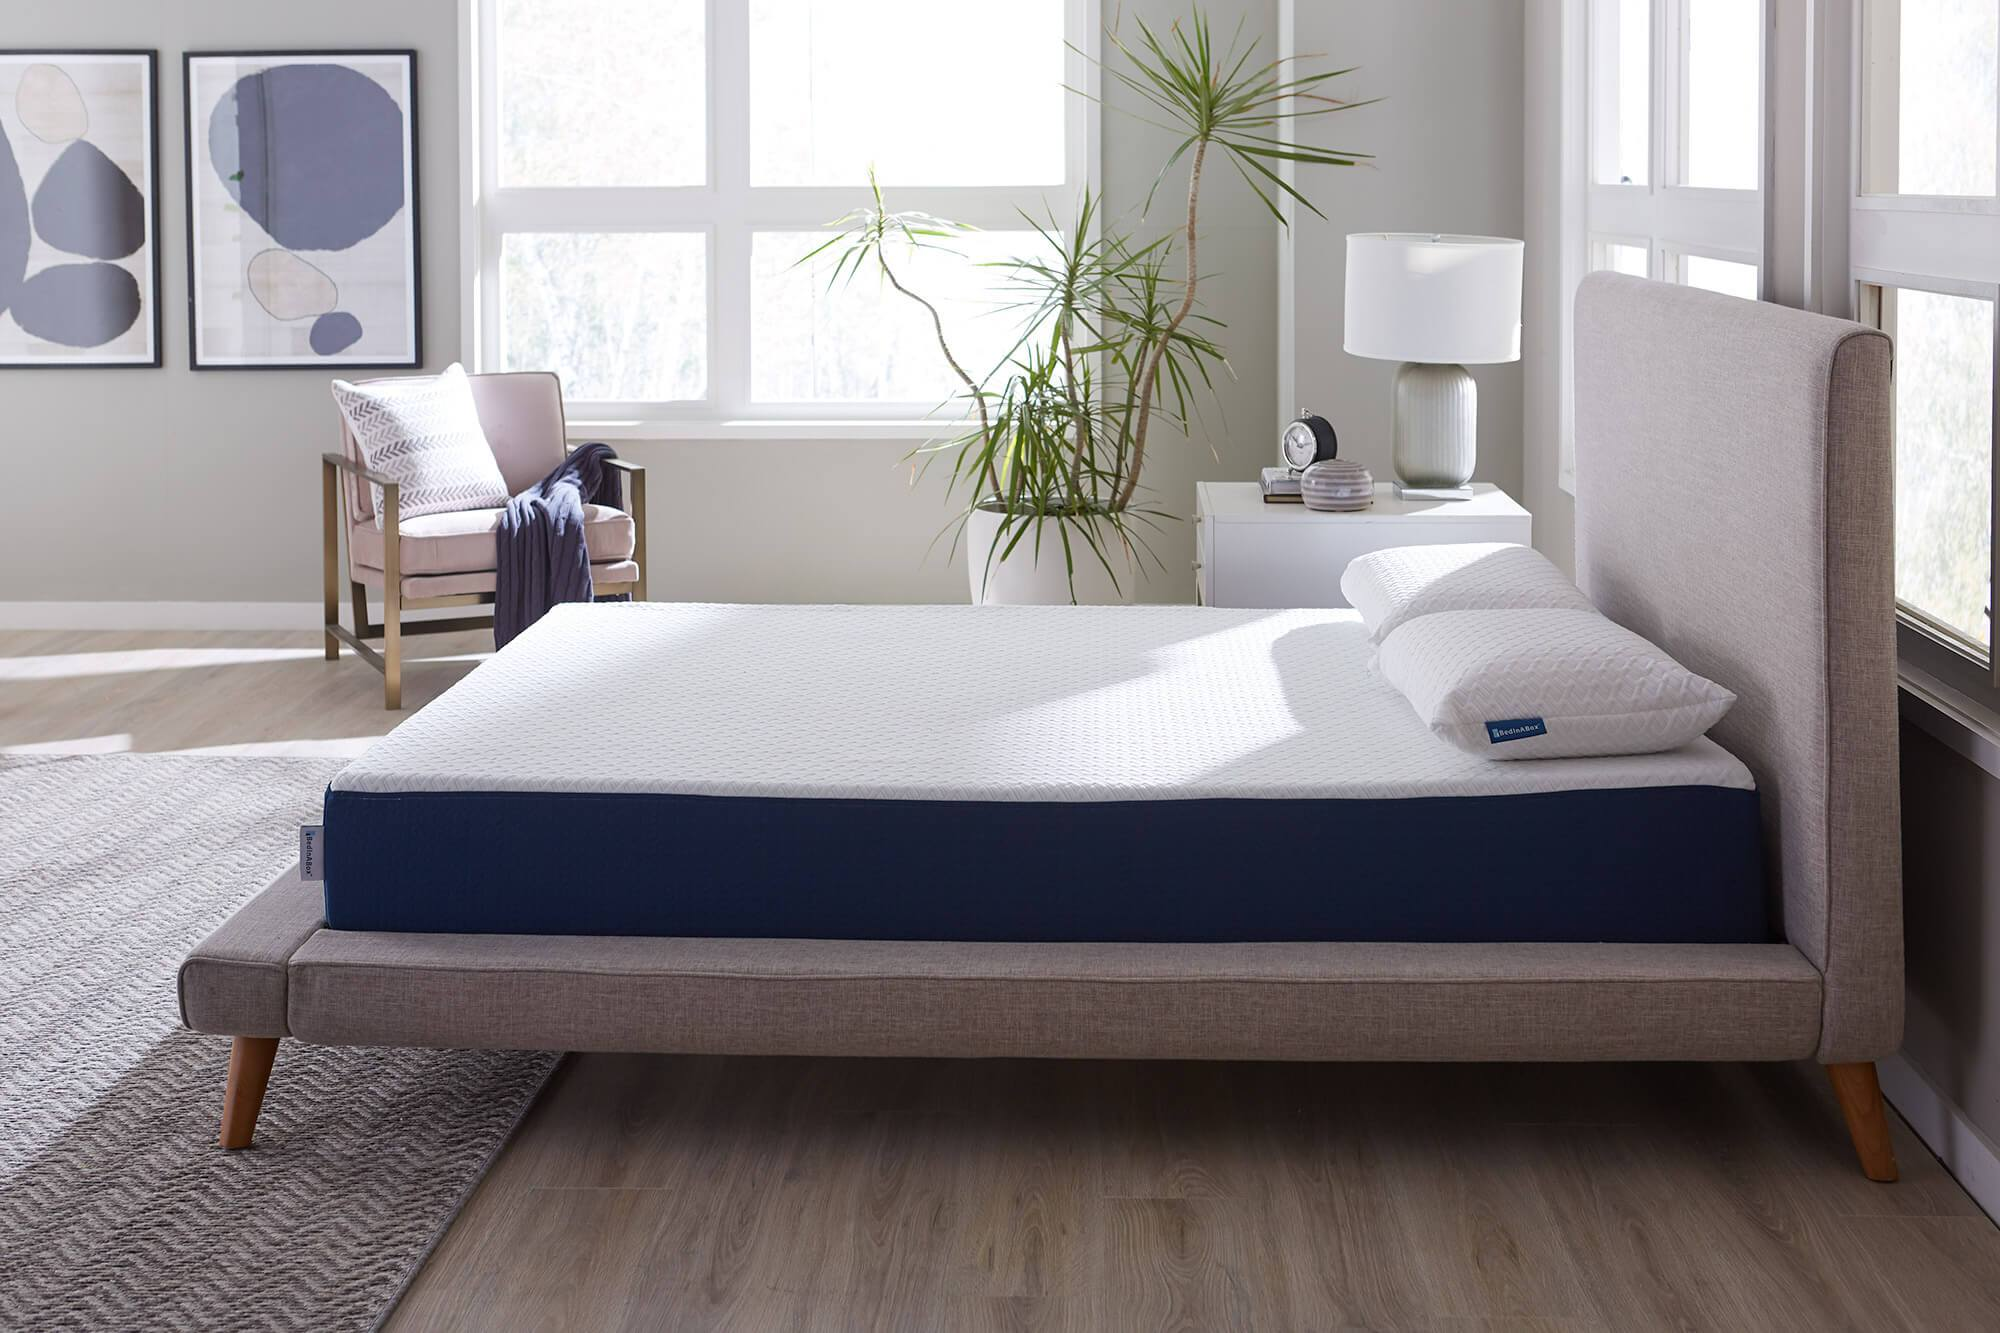 Eco-Friendly Mattress